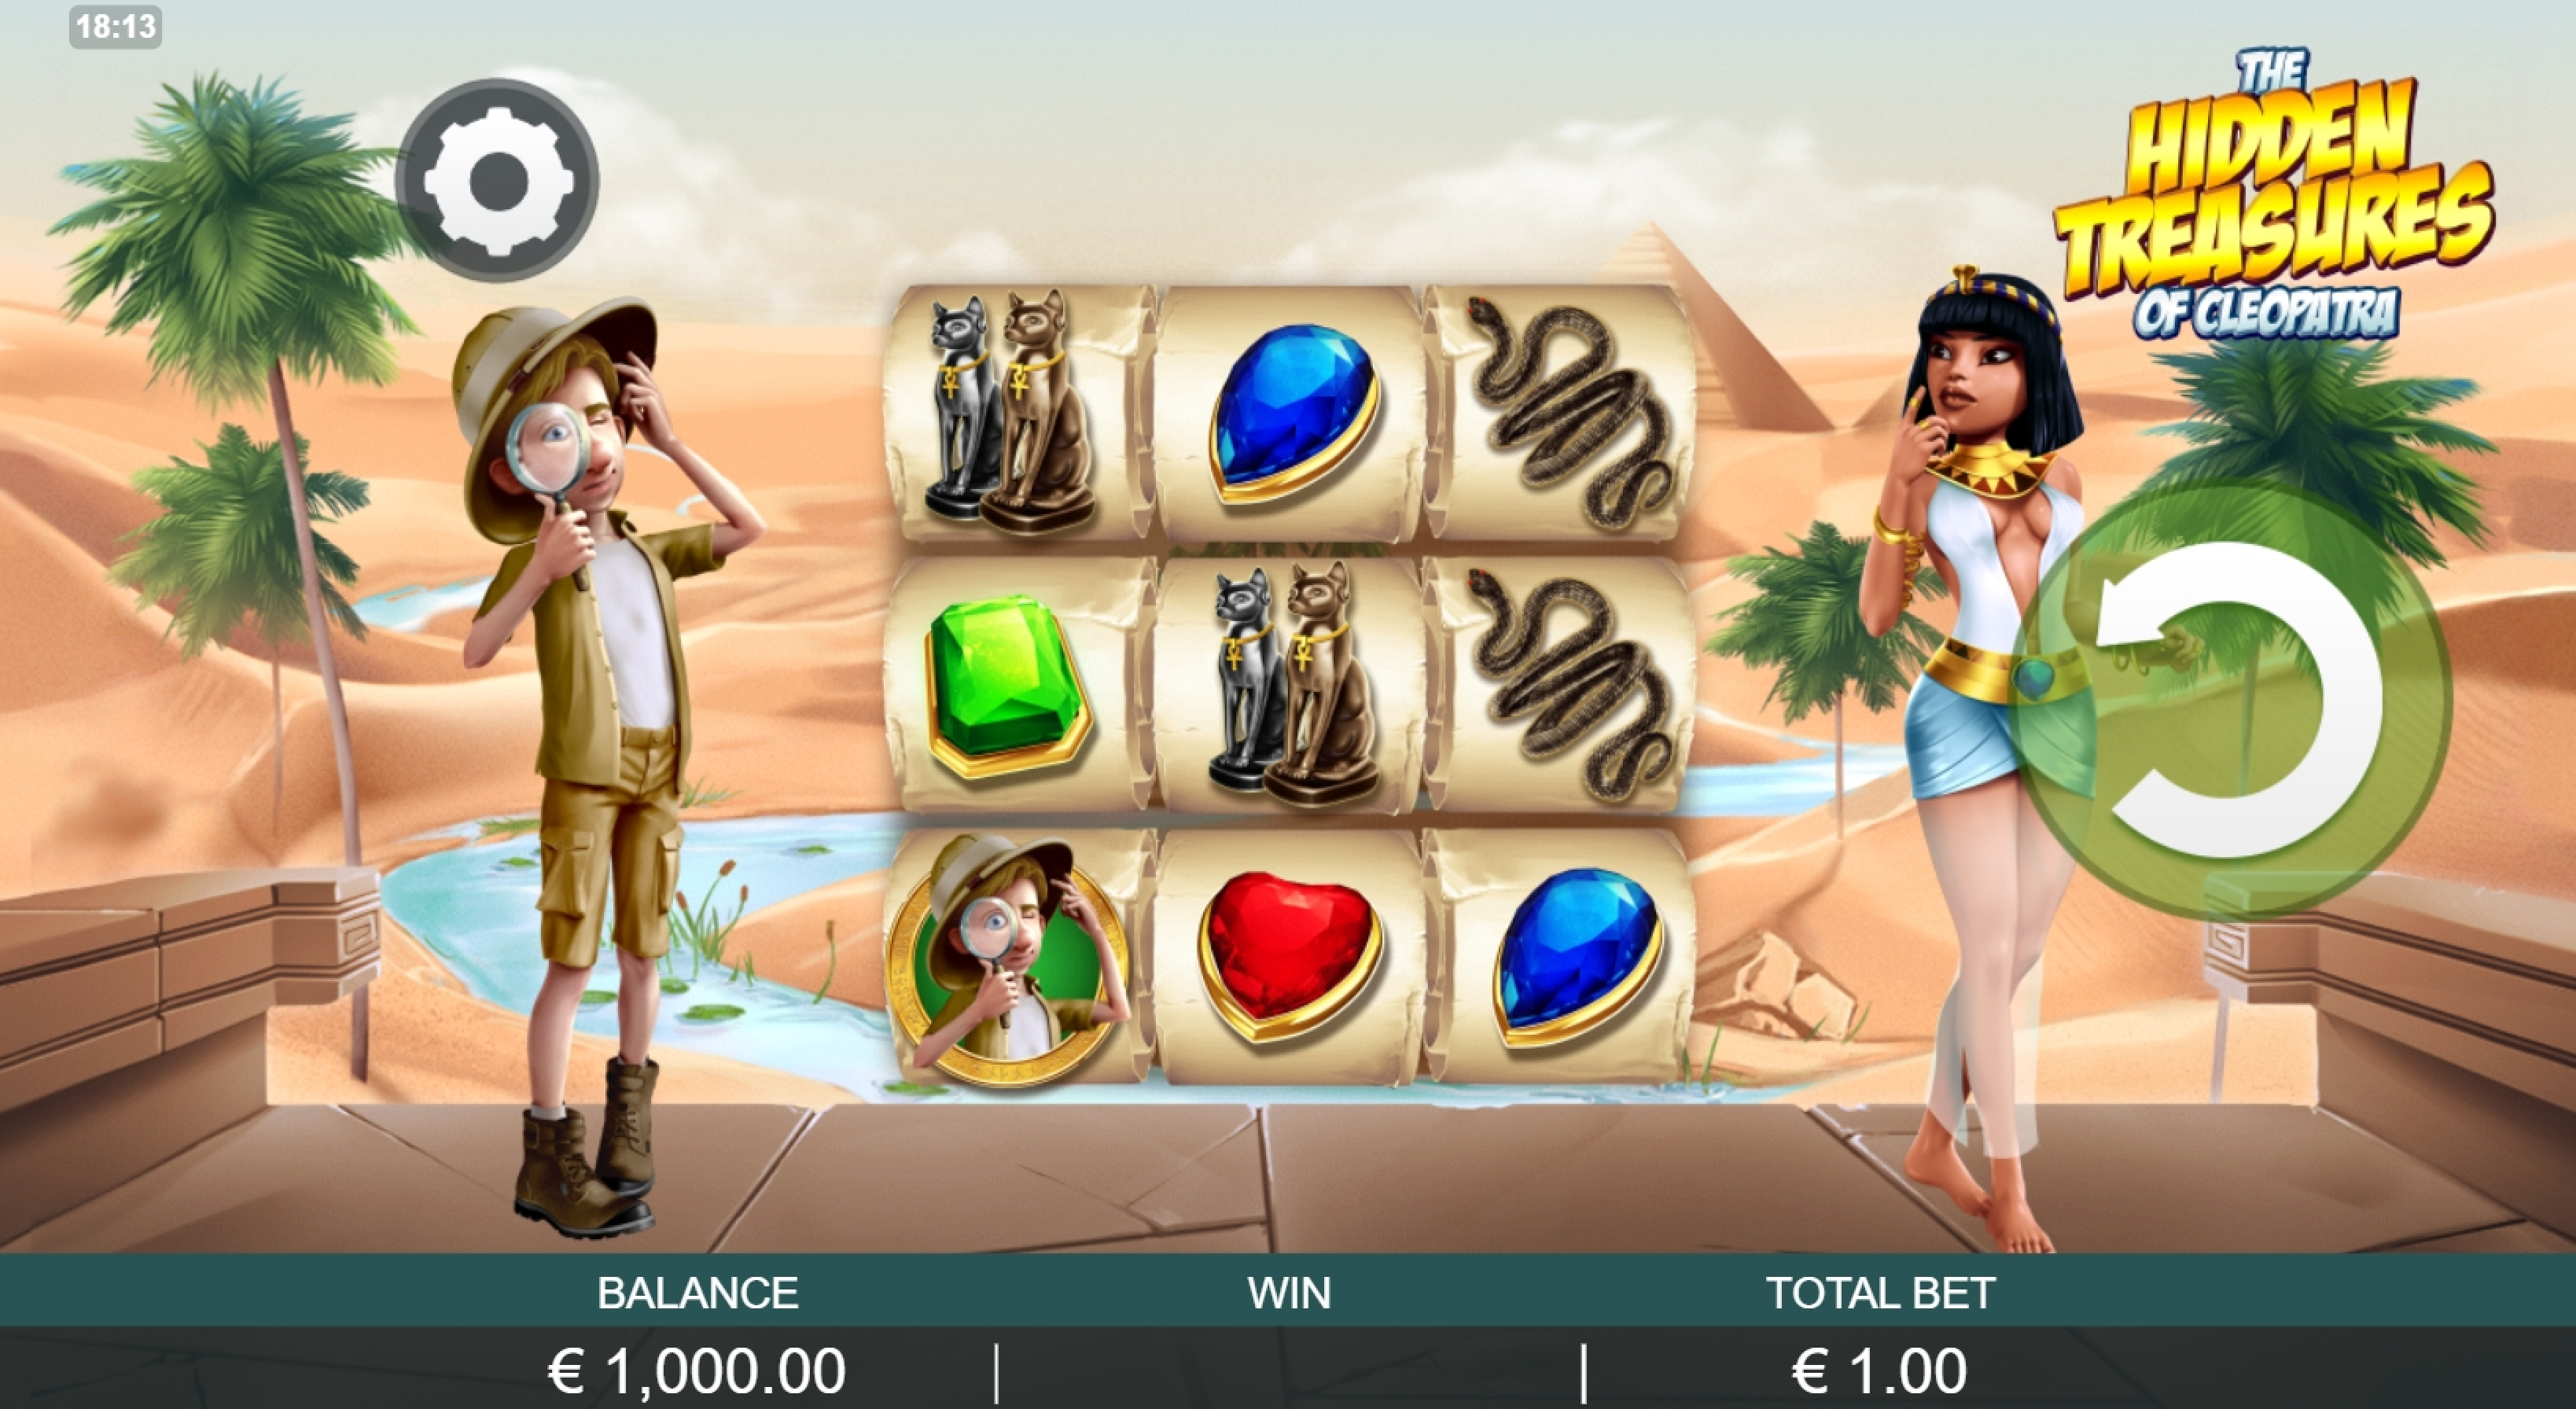 Reels in The Hidden Treasure of Cleopatra Slot Game by Probability Jones